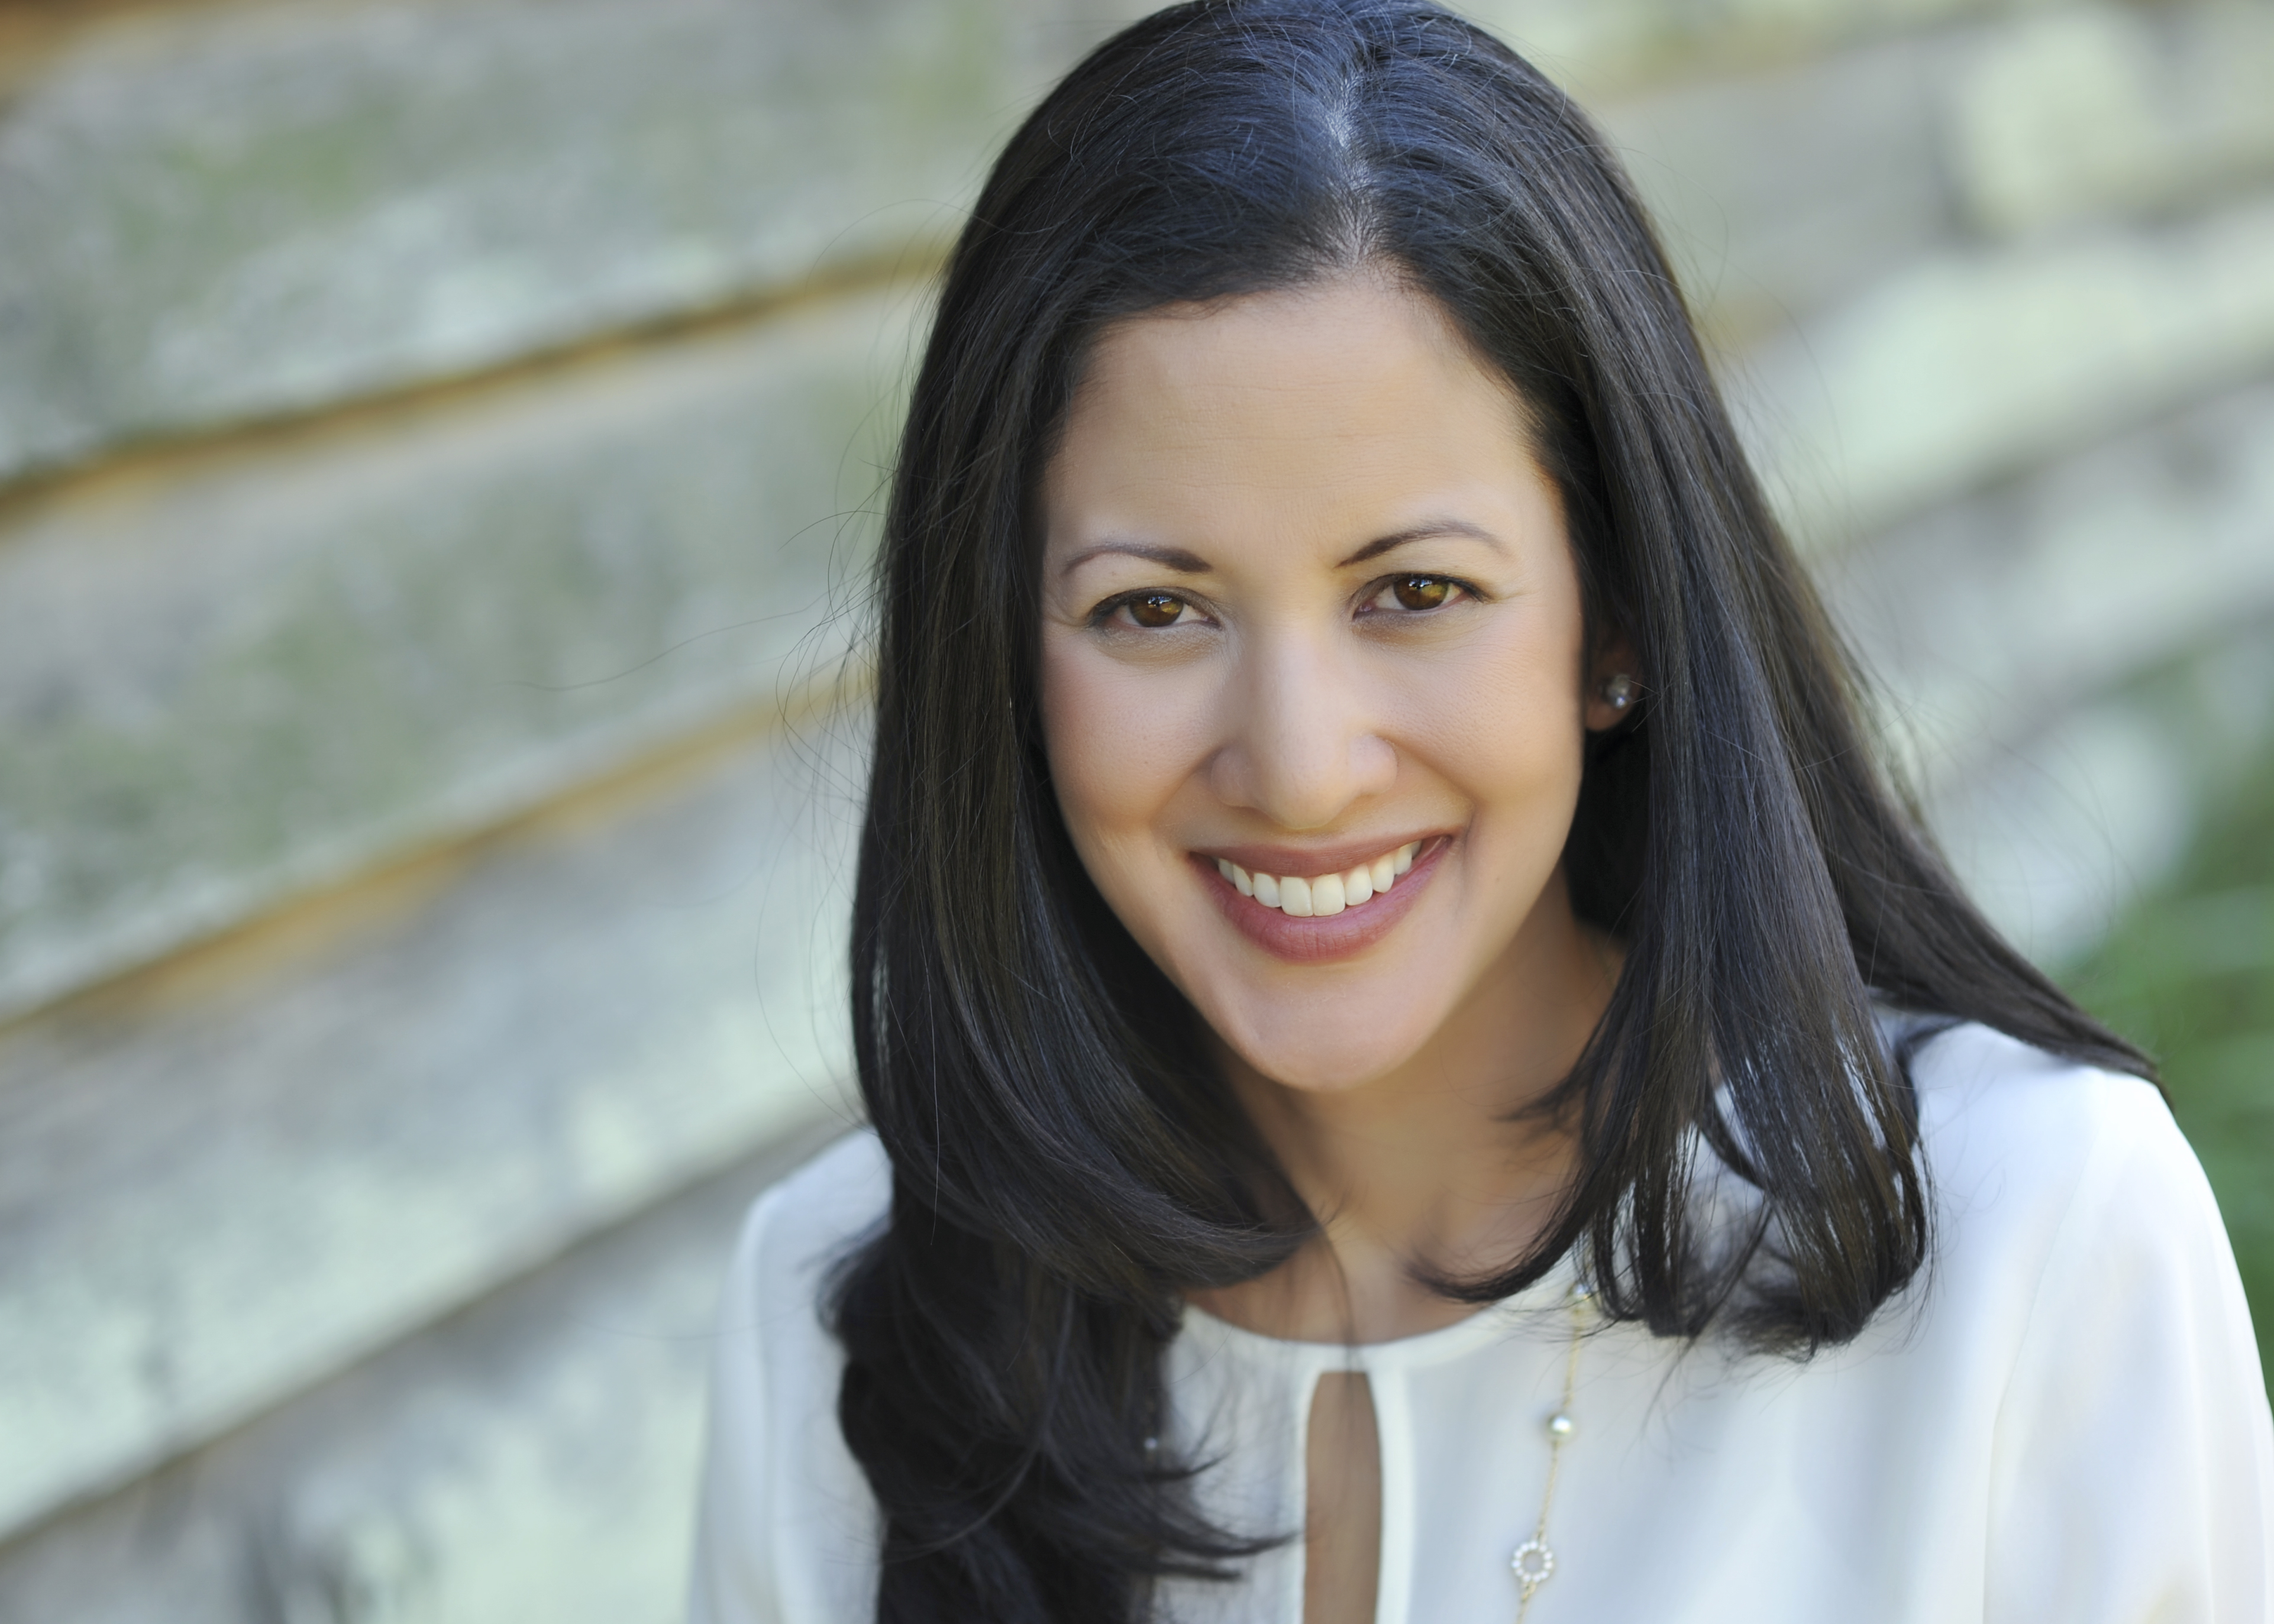 Zenobia: former 49ers cheerleader, Stanford grad,  and Women in Tech mentor